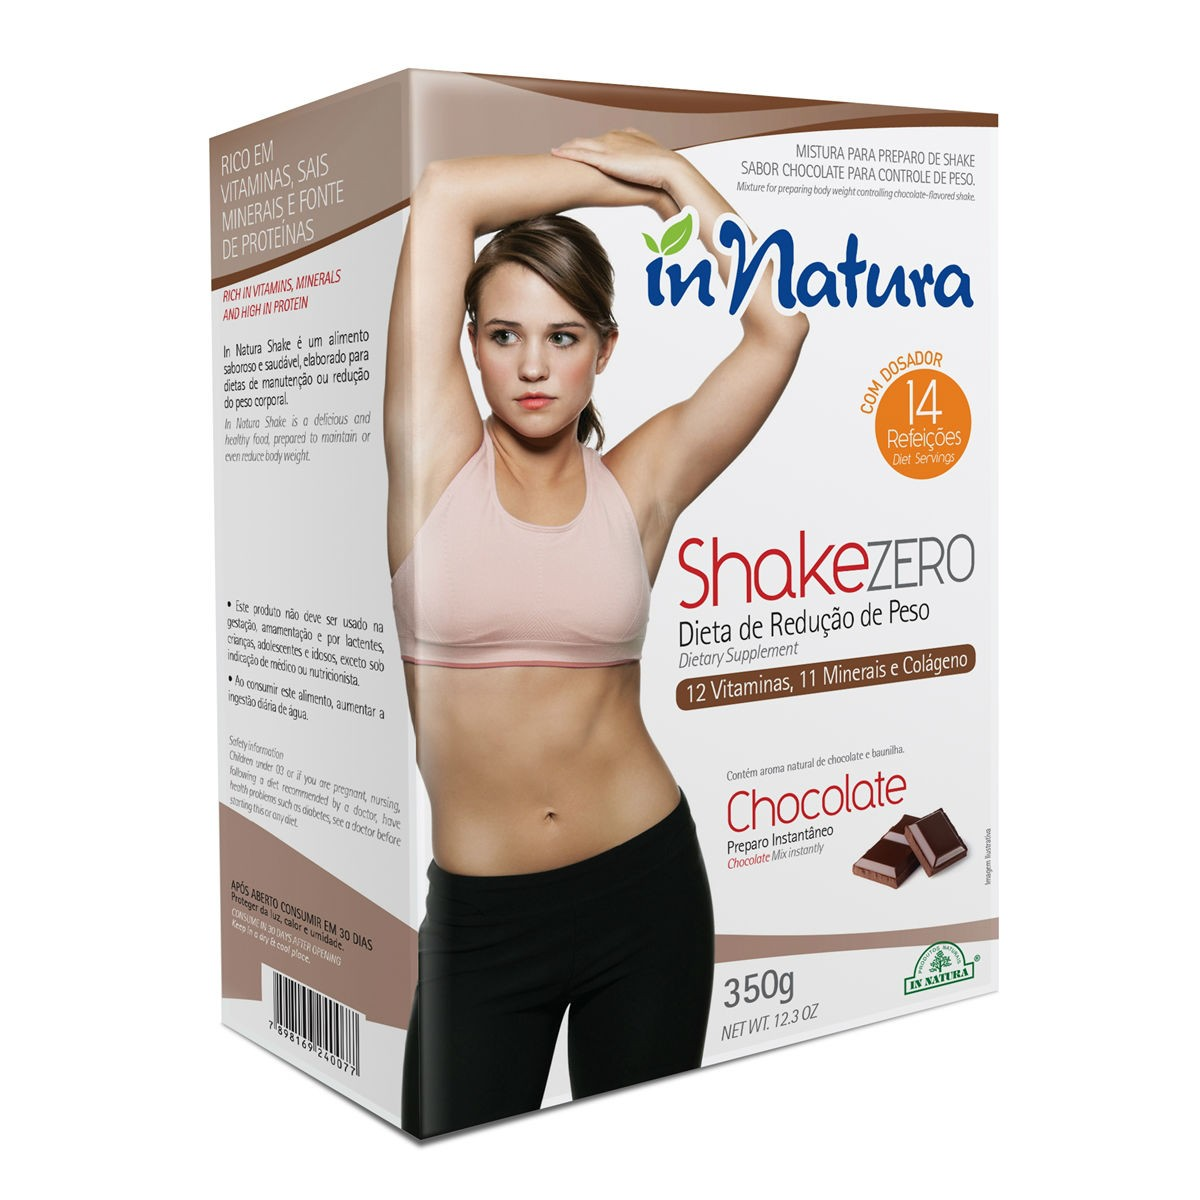 Shake Zero Chocolate 350g - In Natura